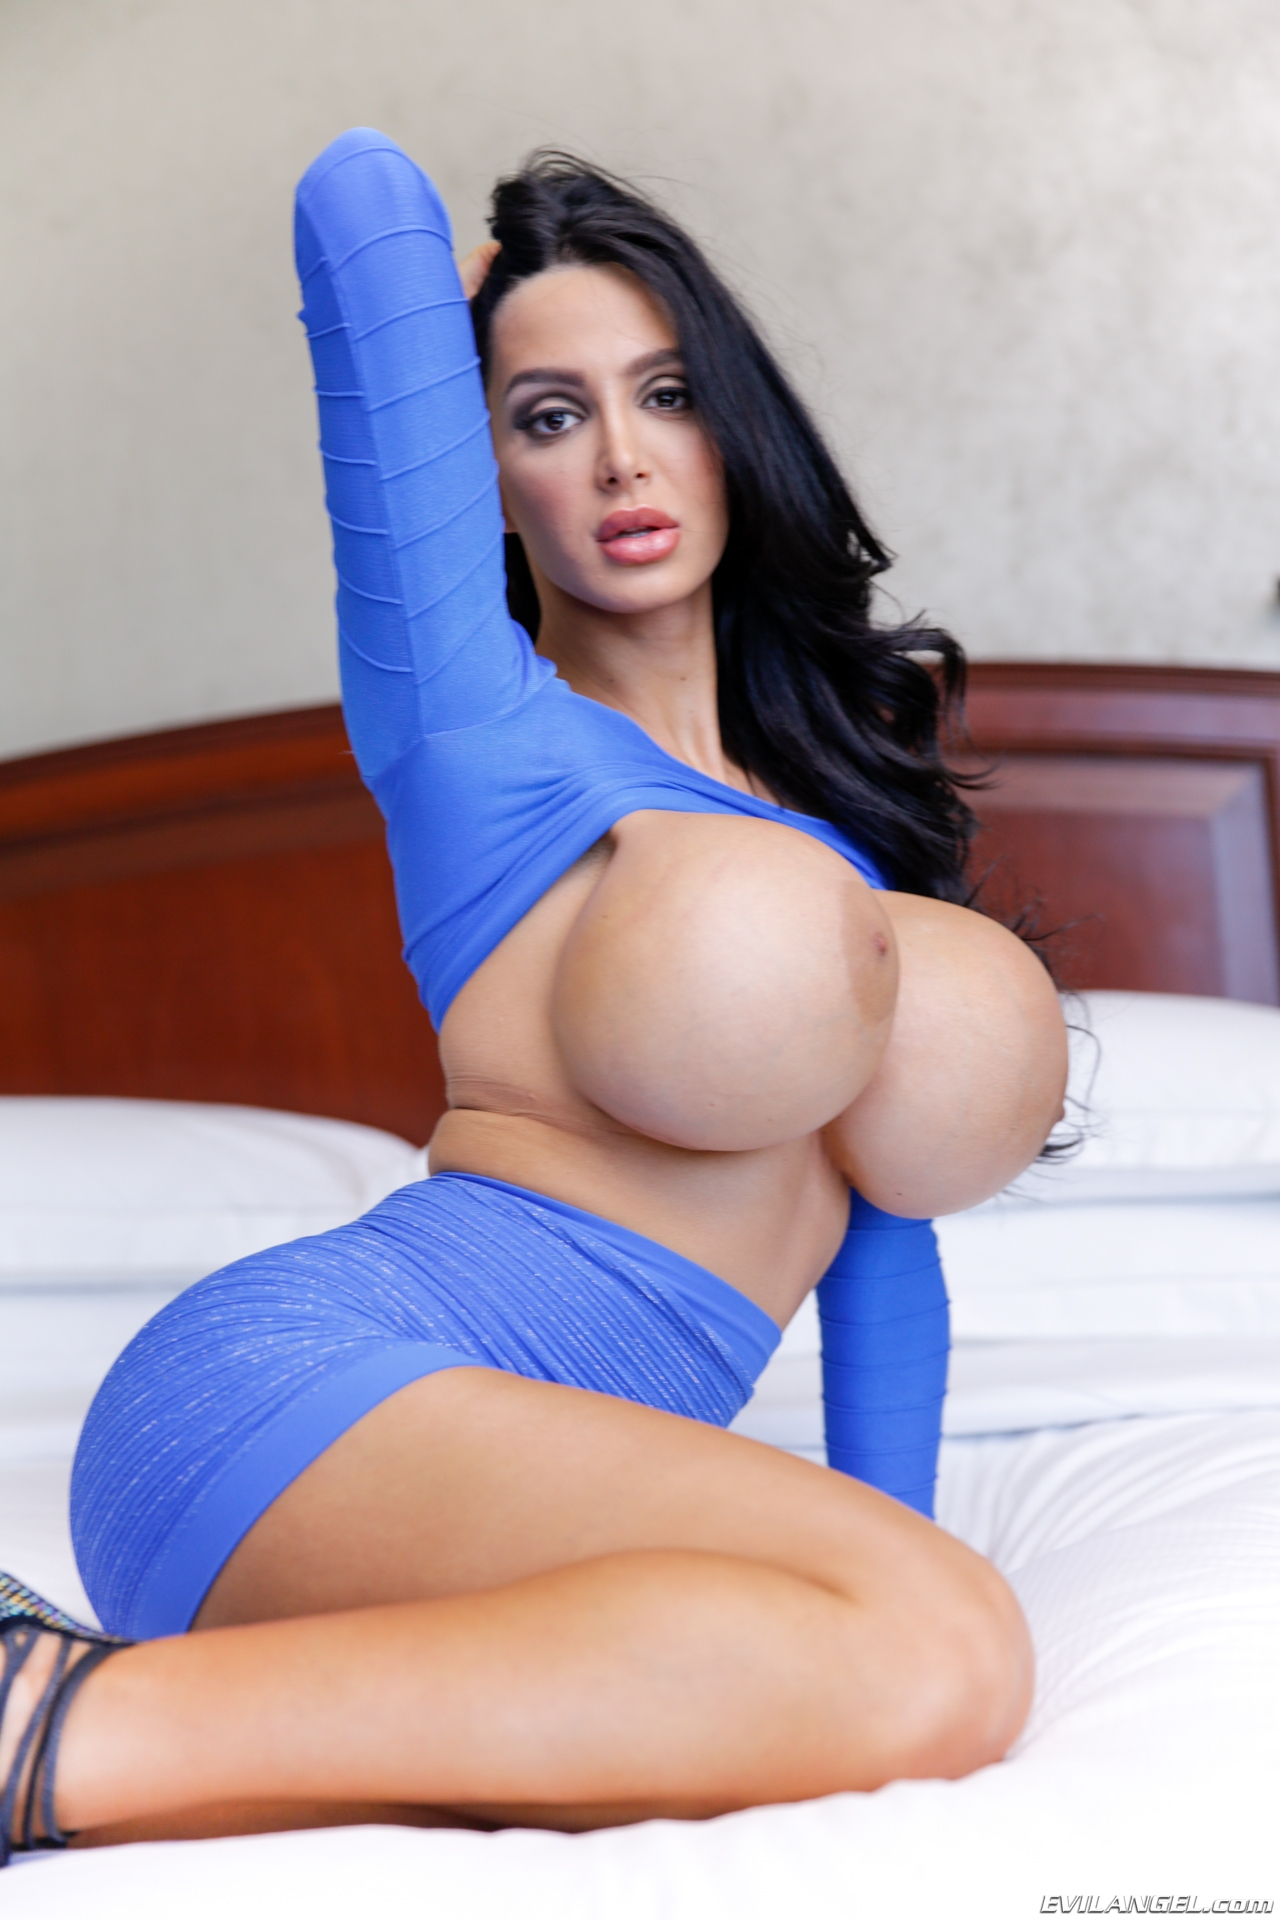 Amy Anderson Nude Pic amy anderssen nude - 25 pictures: rating 7.86/10